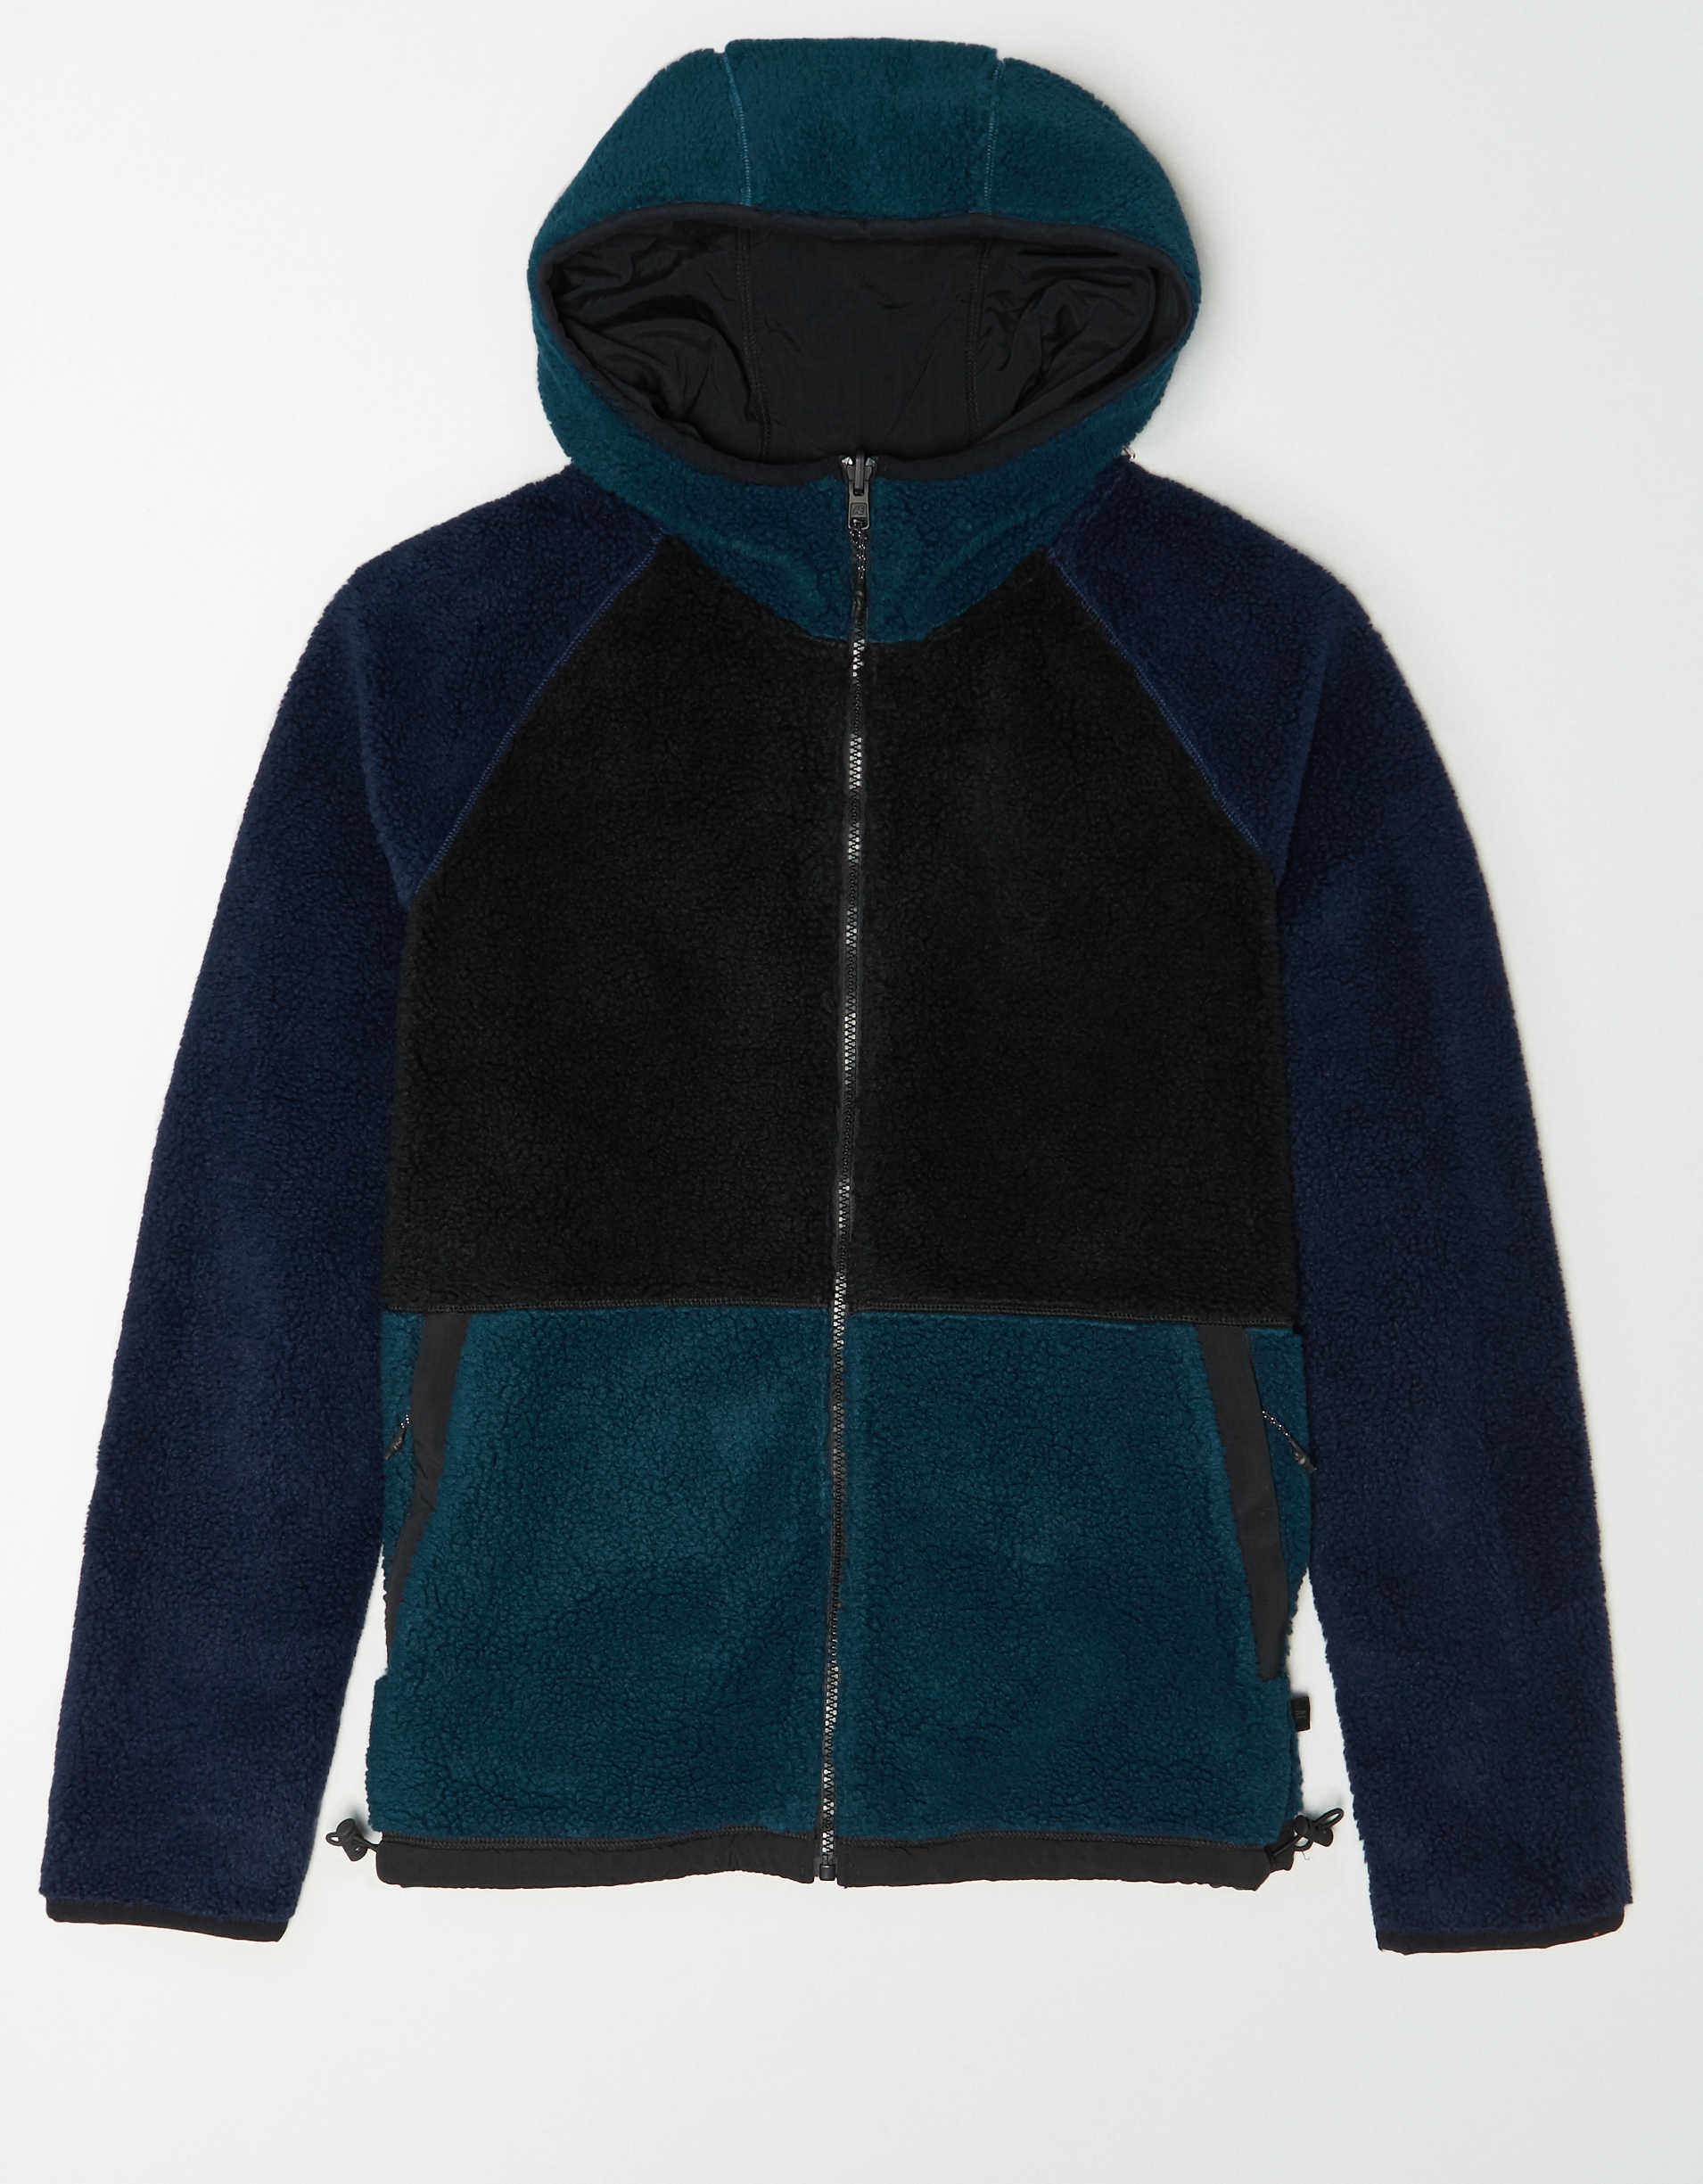 AE Reversible Sherpa Zip-Up Jacket